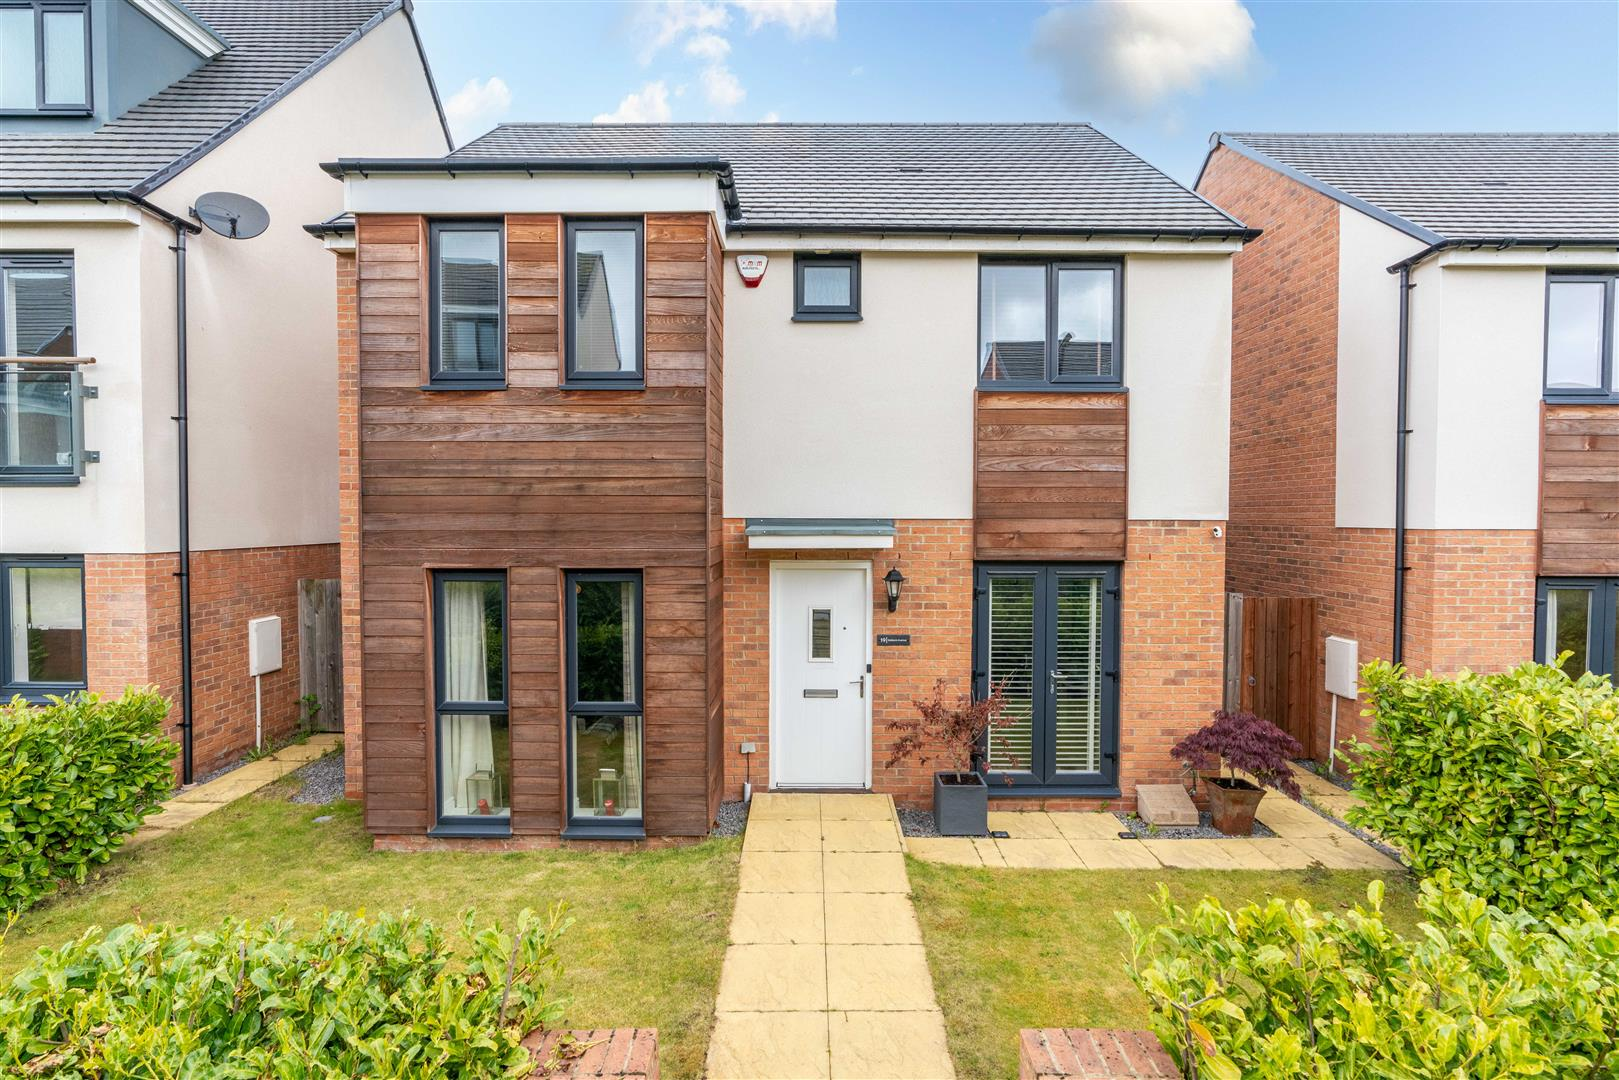 4 bed detached house for sale in Saltwick Avenue, Great Park - Property Image 1